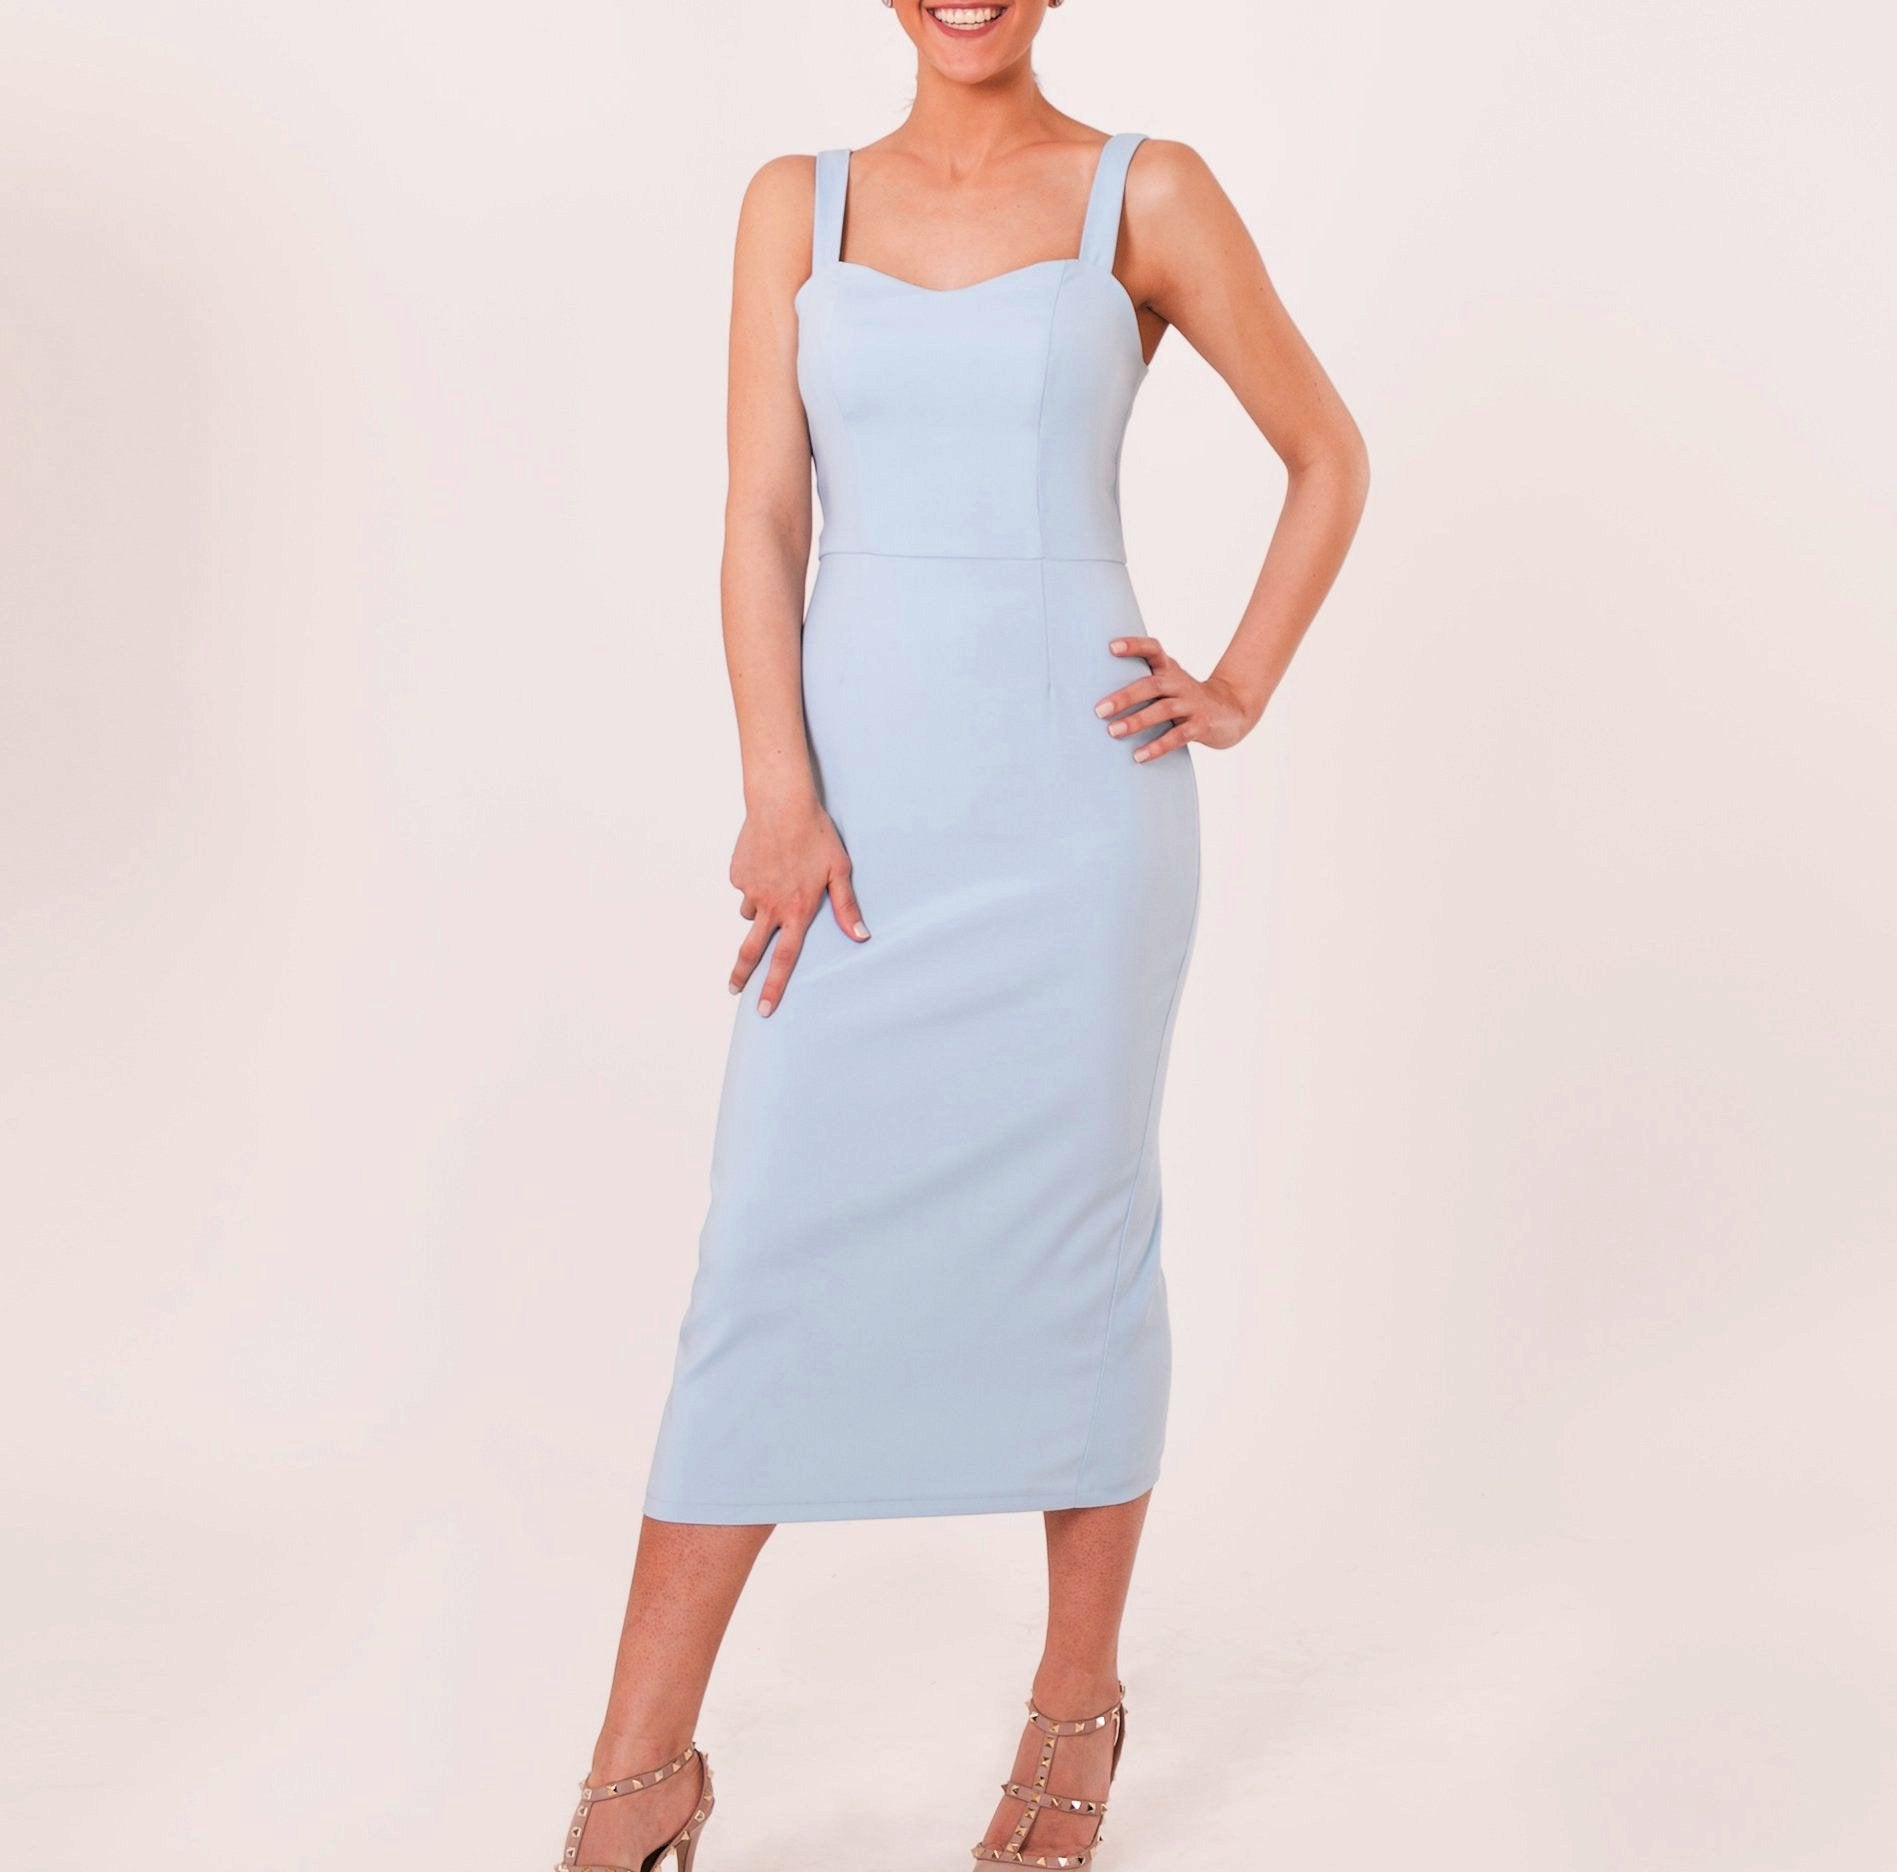 Blue Spring Slip Dress